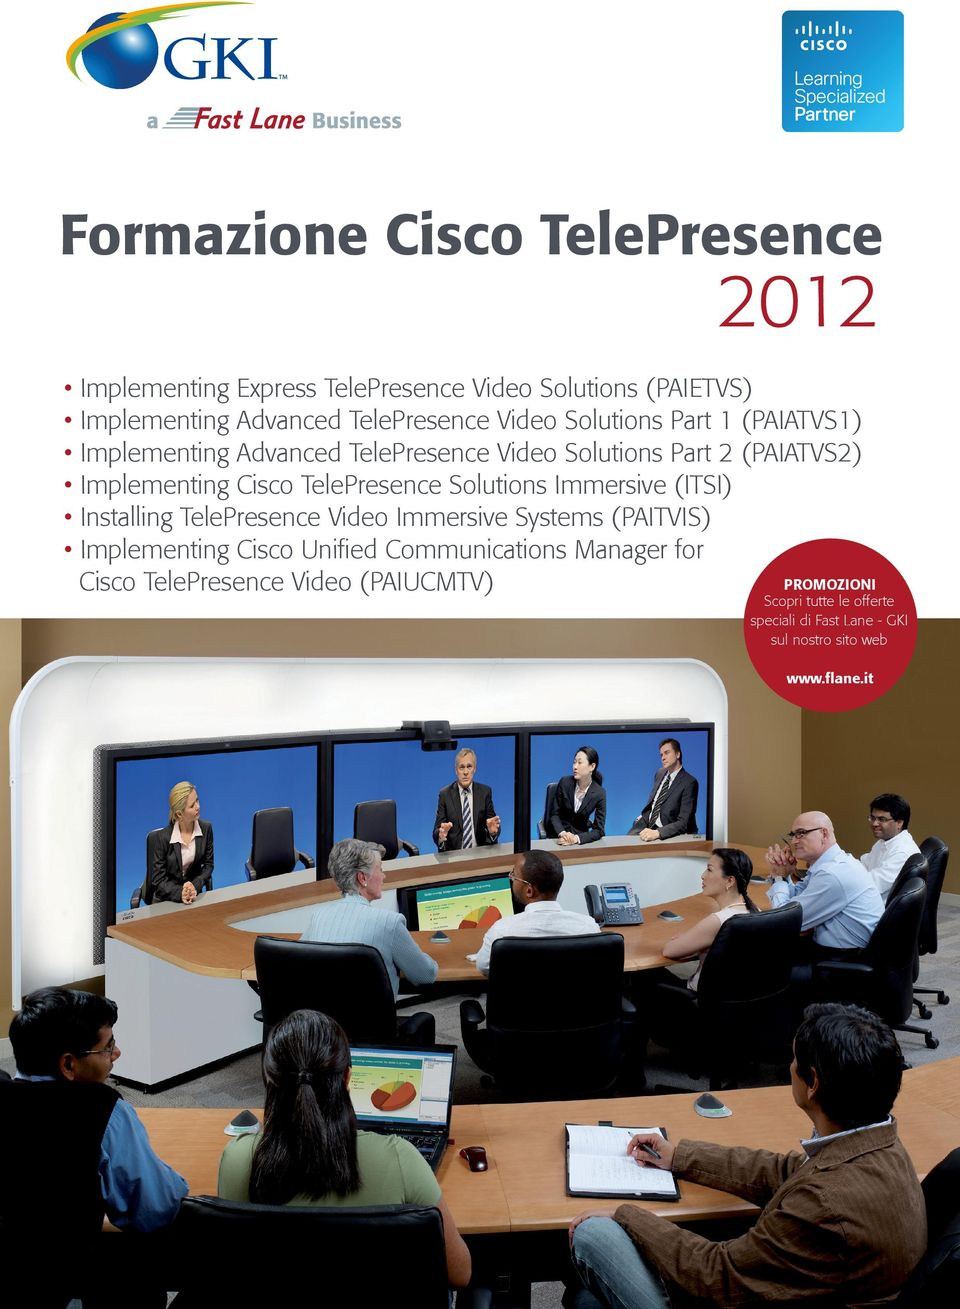 TelePresence Solutions Immersive (ITSI) Installing TelePresence Video Immersive Systems (PAITVIS) Implementing Cisco Unified